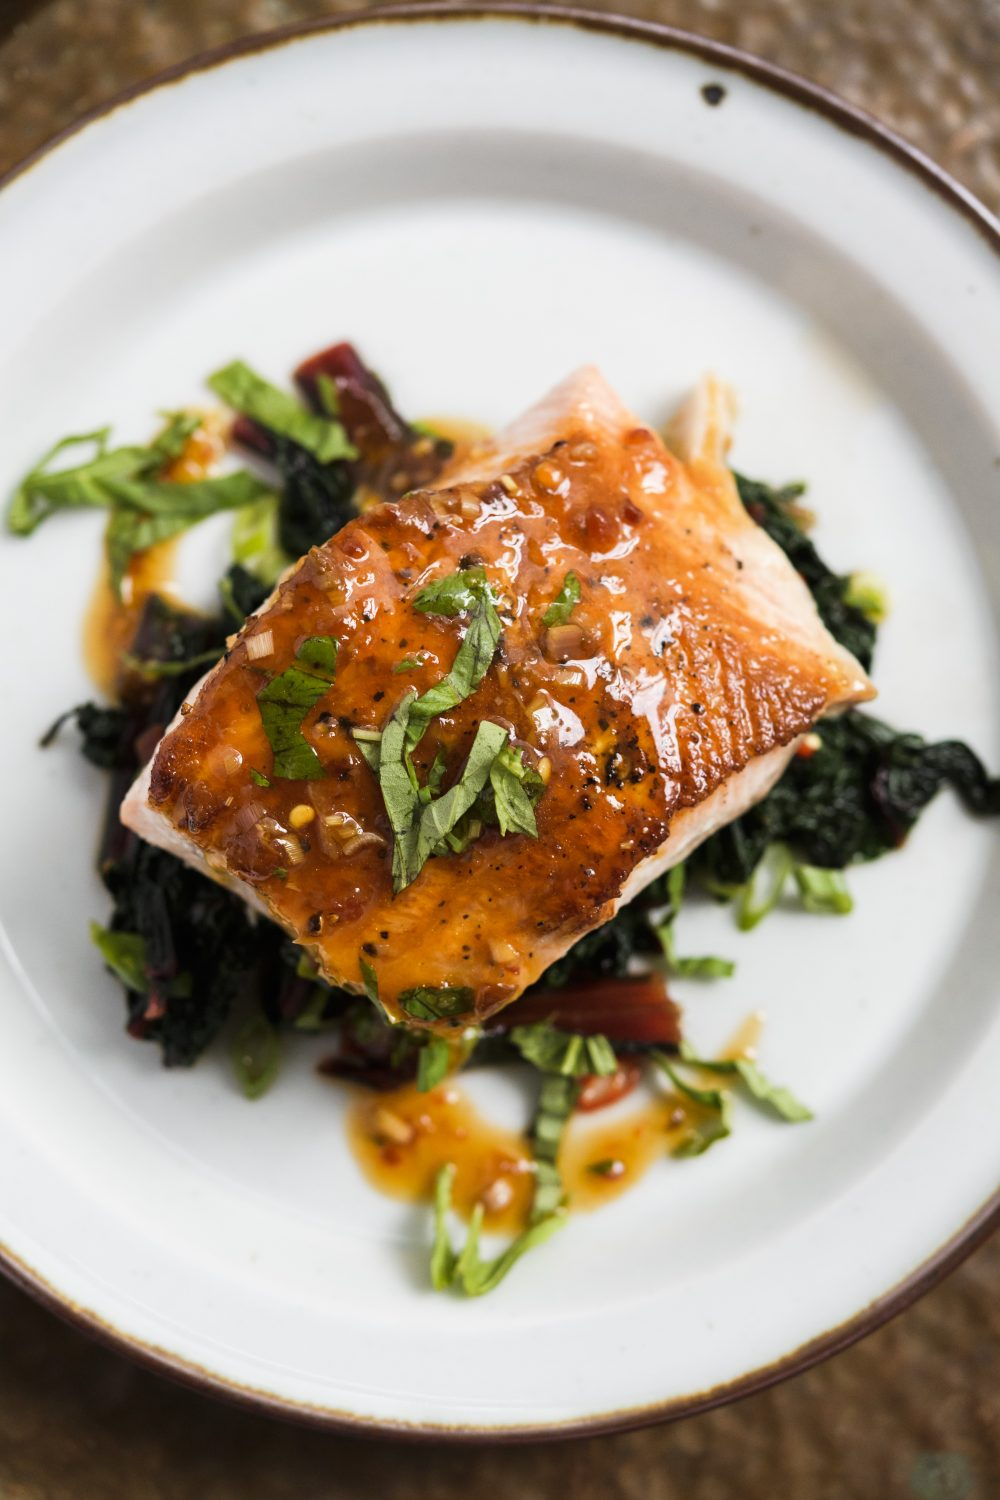 Glazed Salmon with Chili-Basil Sauce